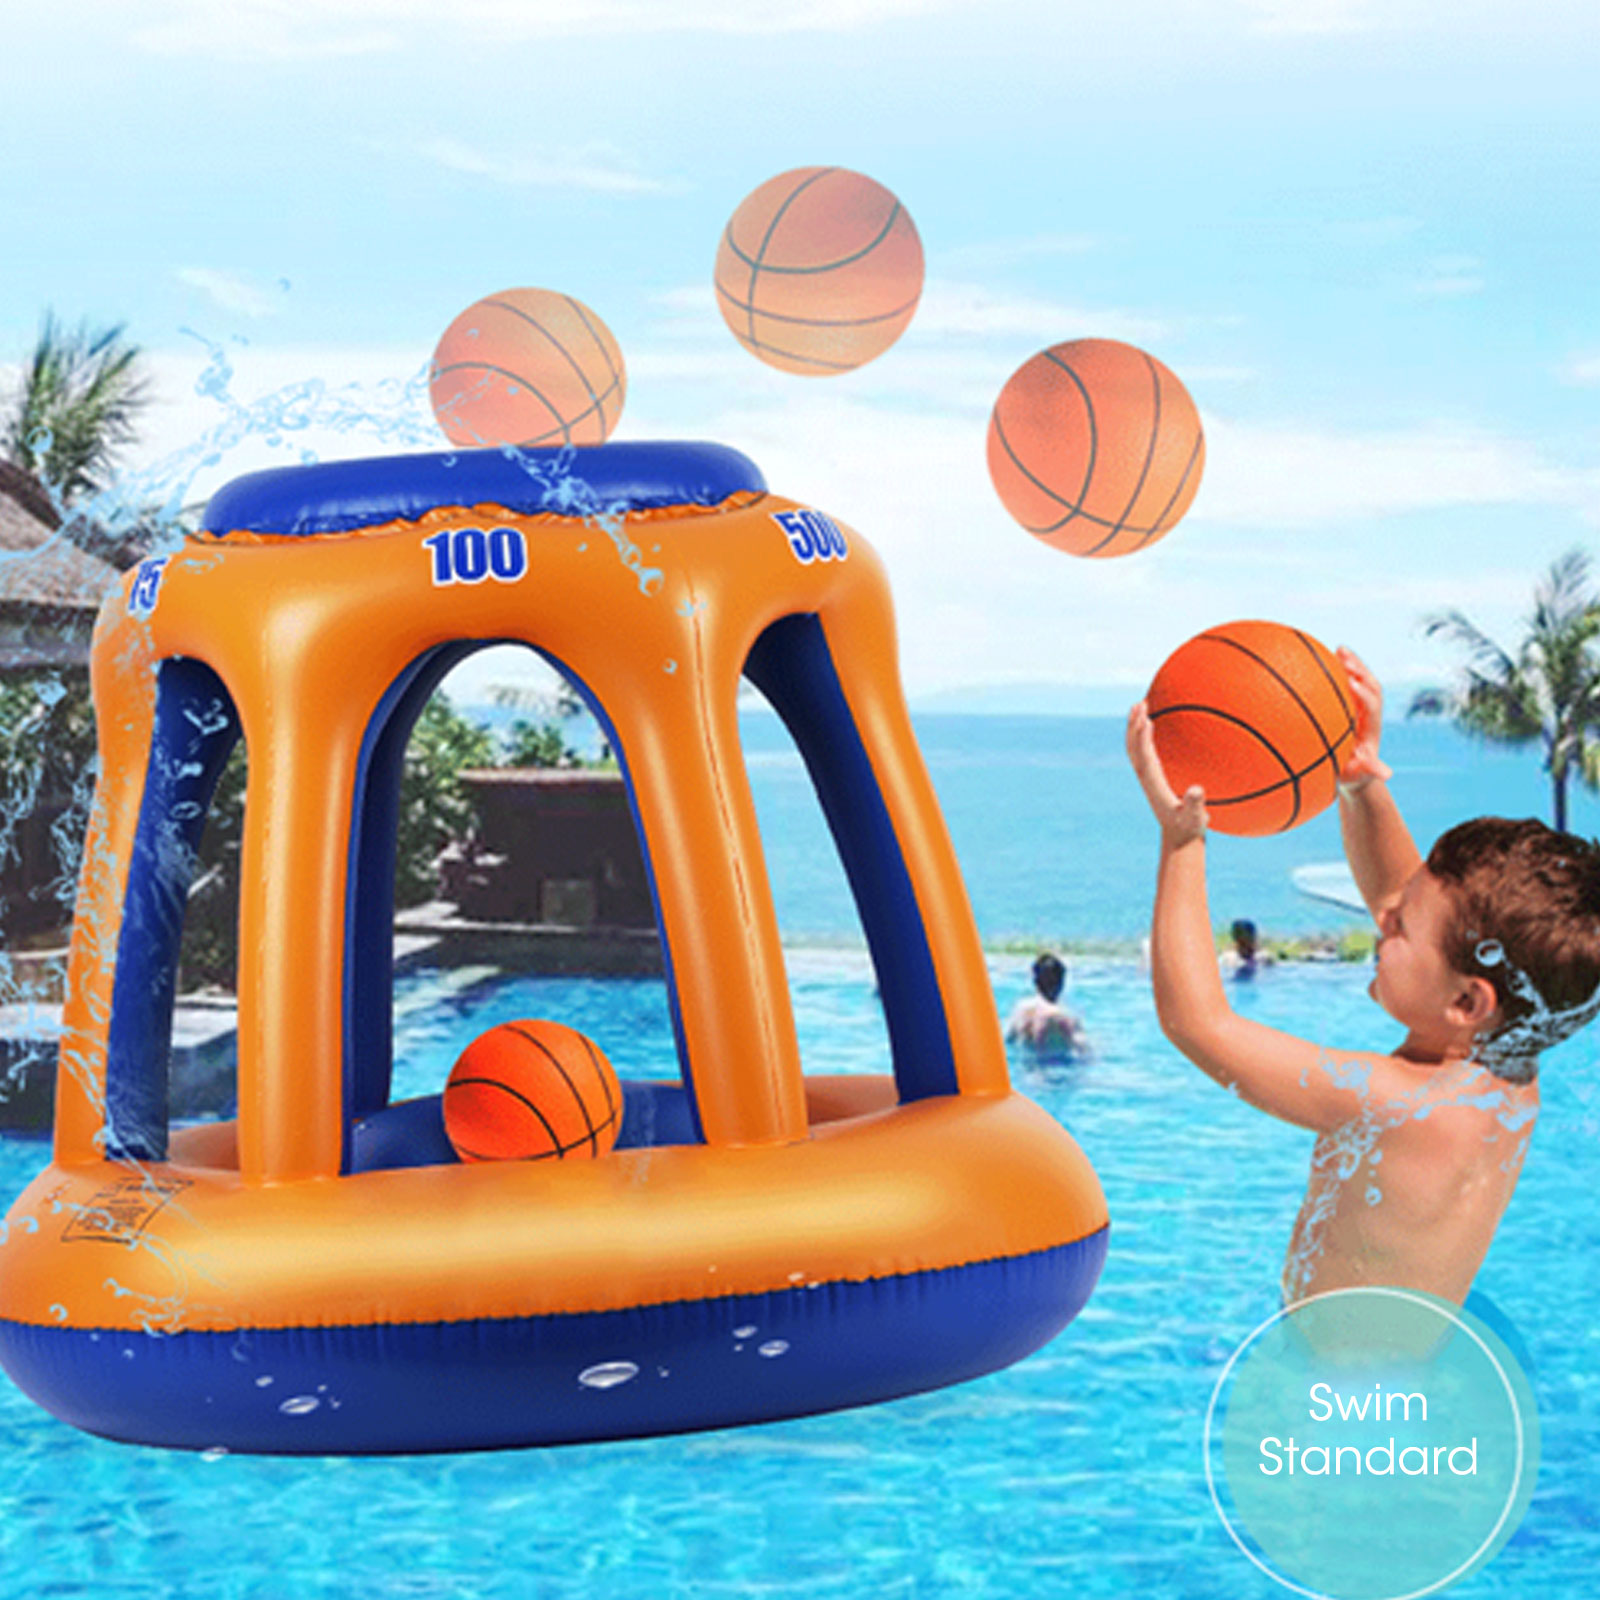 Swimming Pool Basketball Hoop Ball Set Inflatable Hoop Water Play Summer Toy For 6 Years Old Above PVC Float Pool Accessories